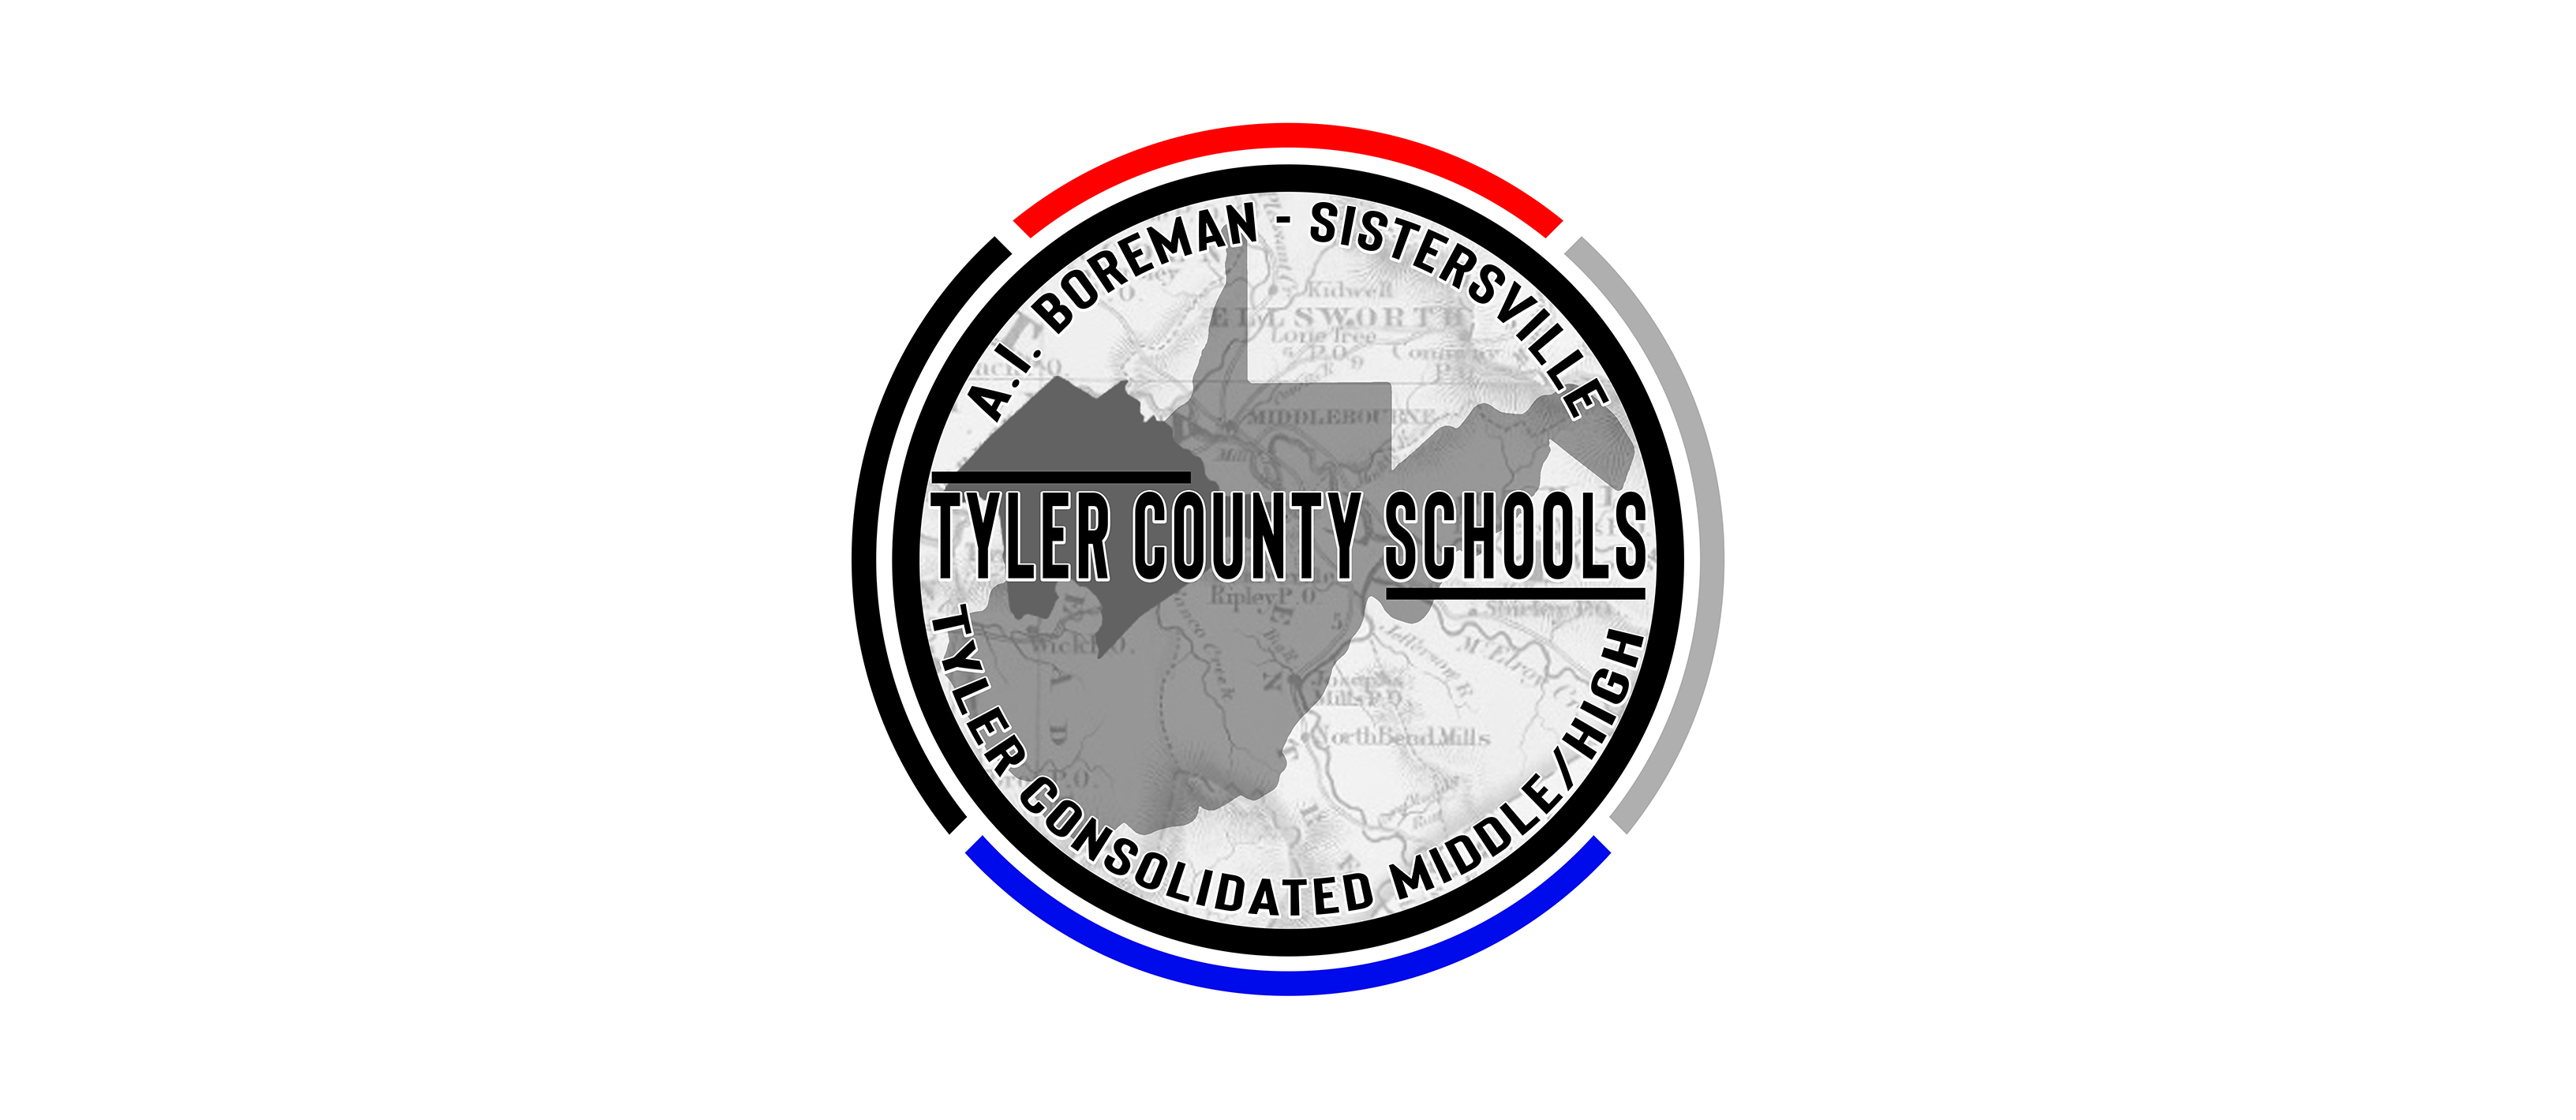 Tyler County Schools seal with map.